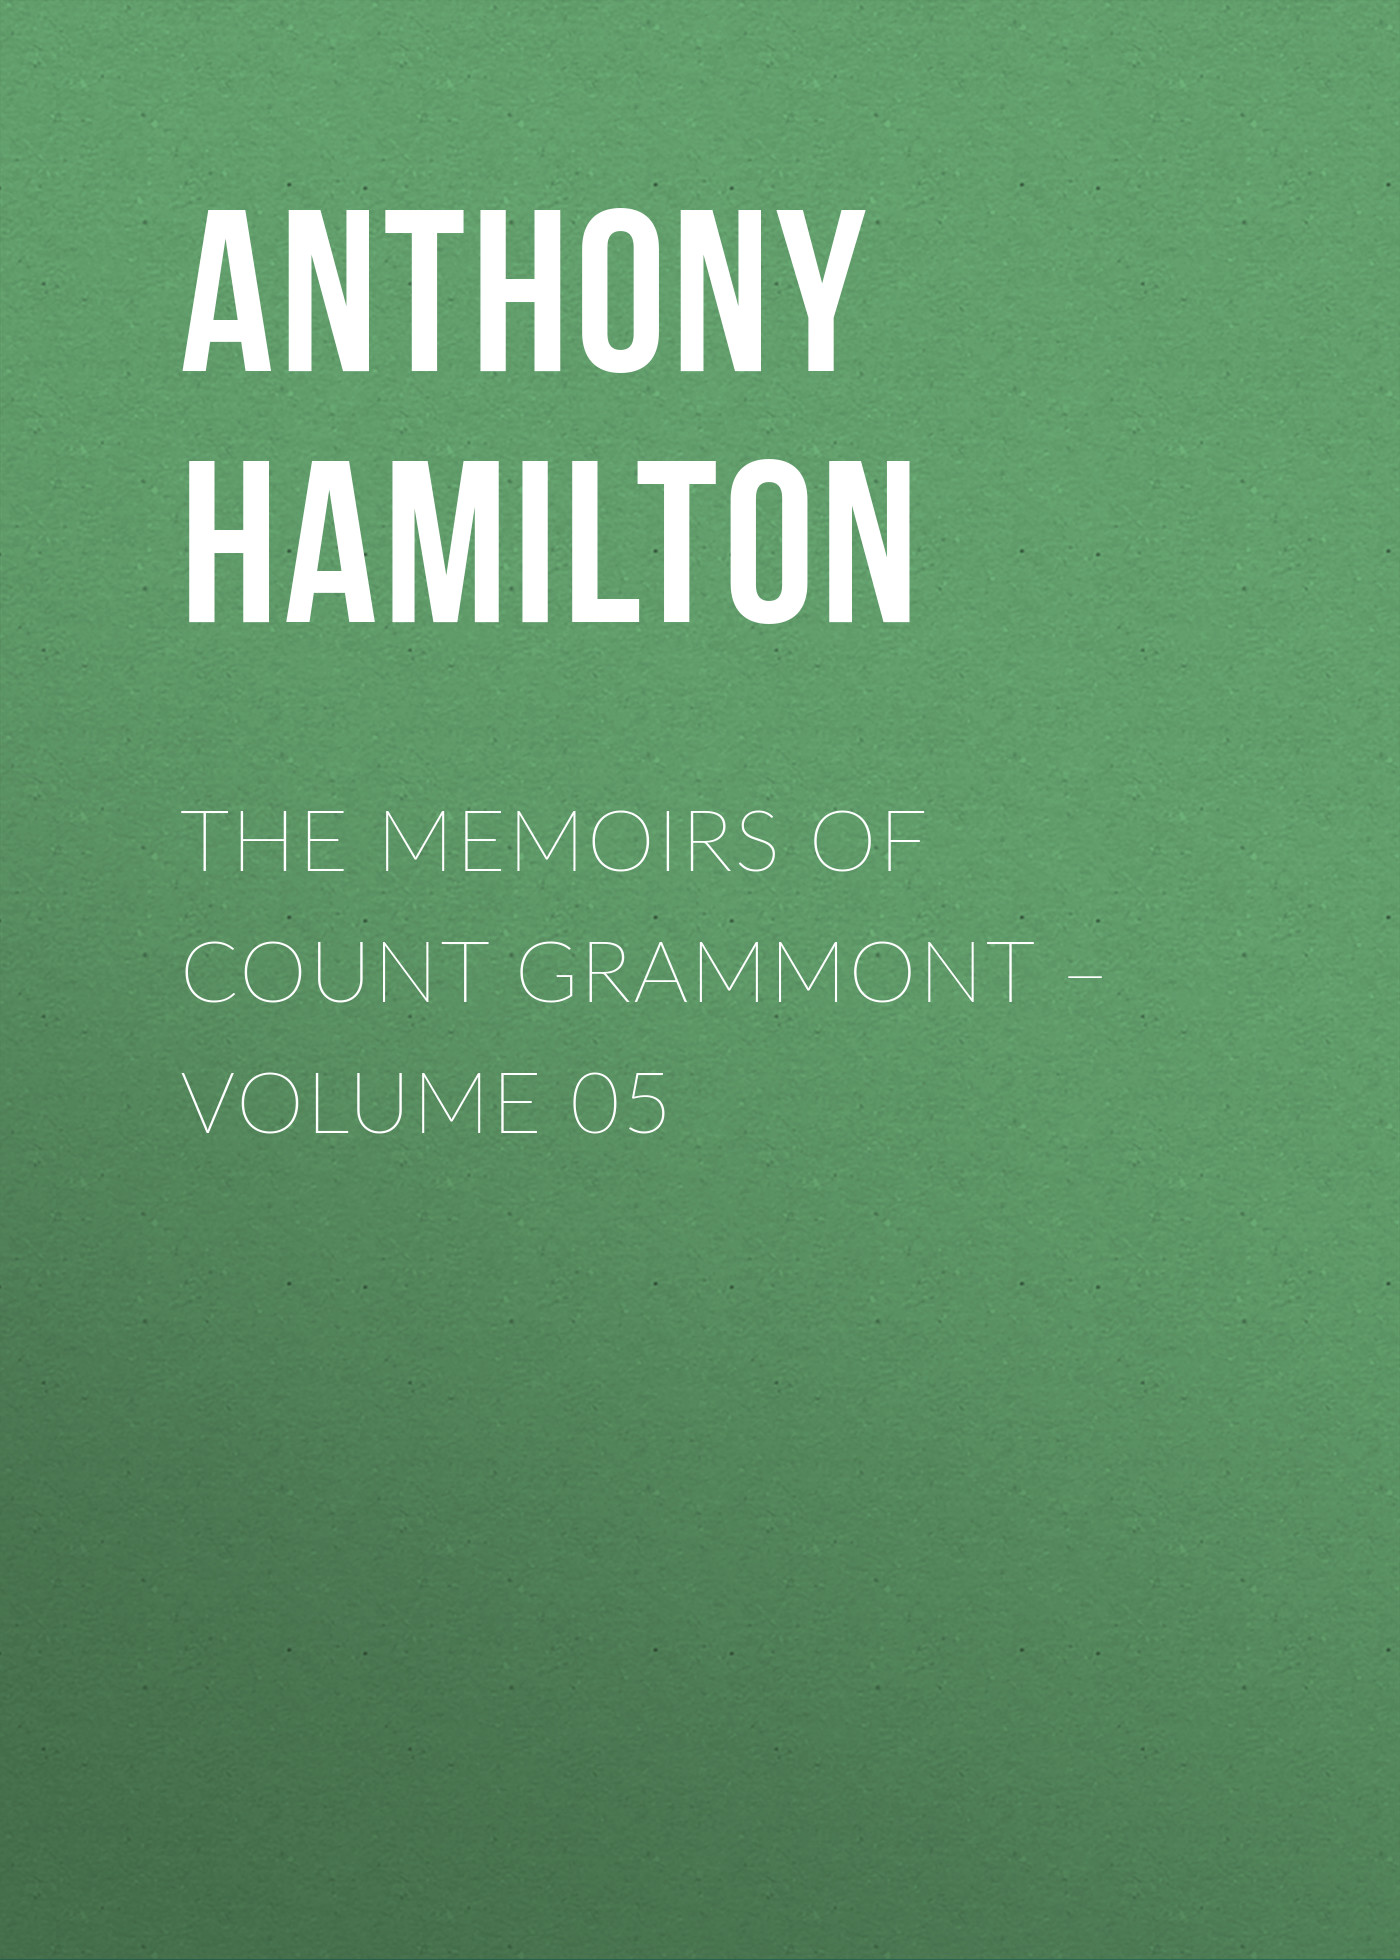 The Memoirs of Count Grammont – Volume 05